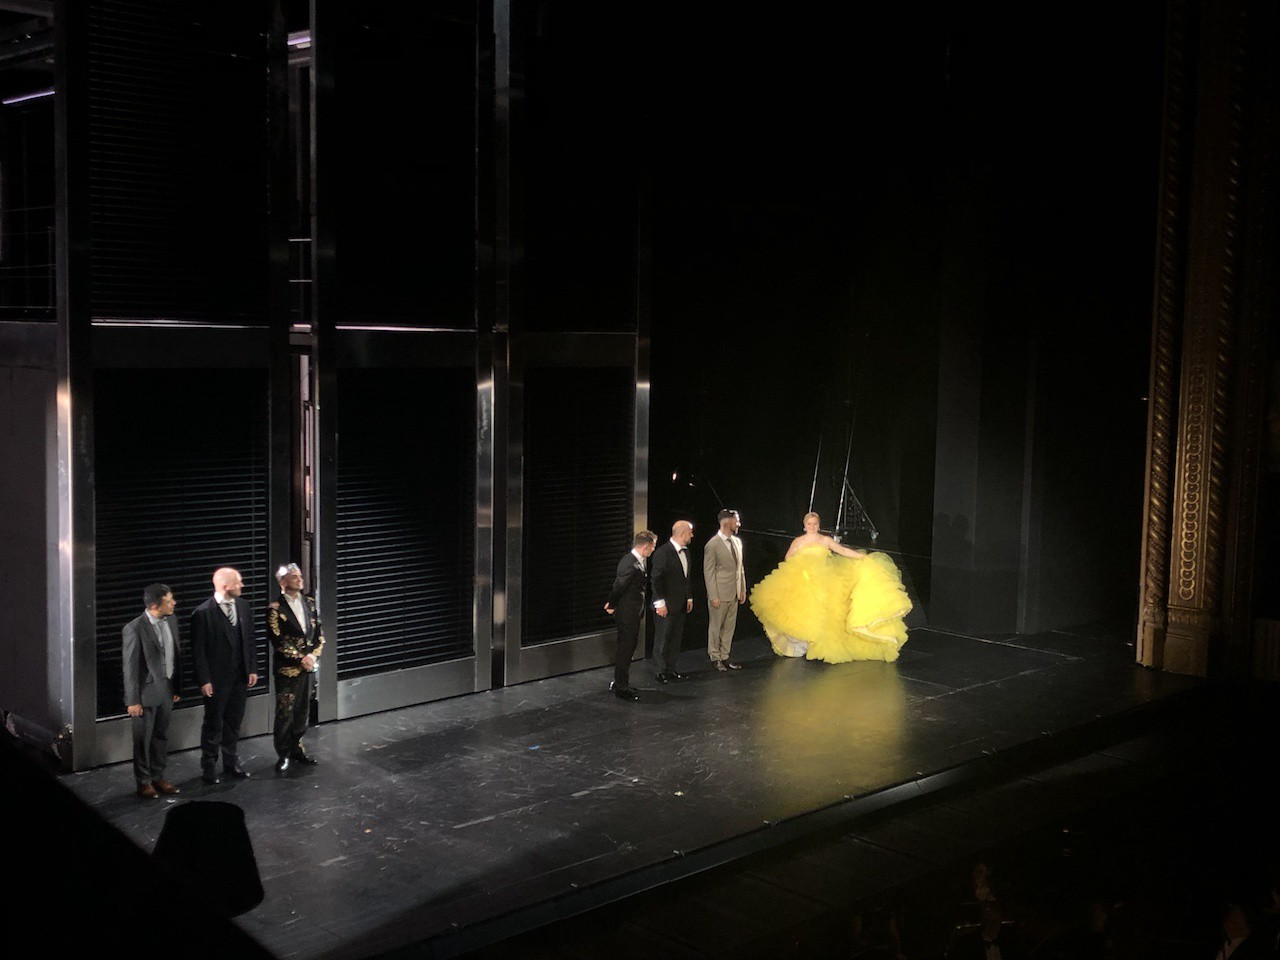 Agrippina Royal Opera House, 04.10.2019